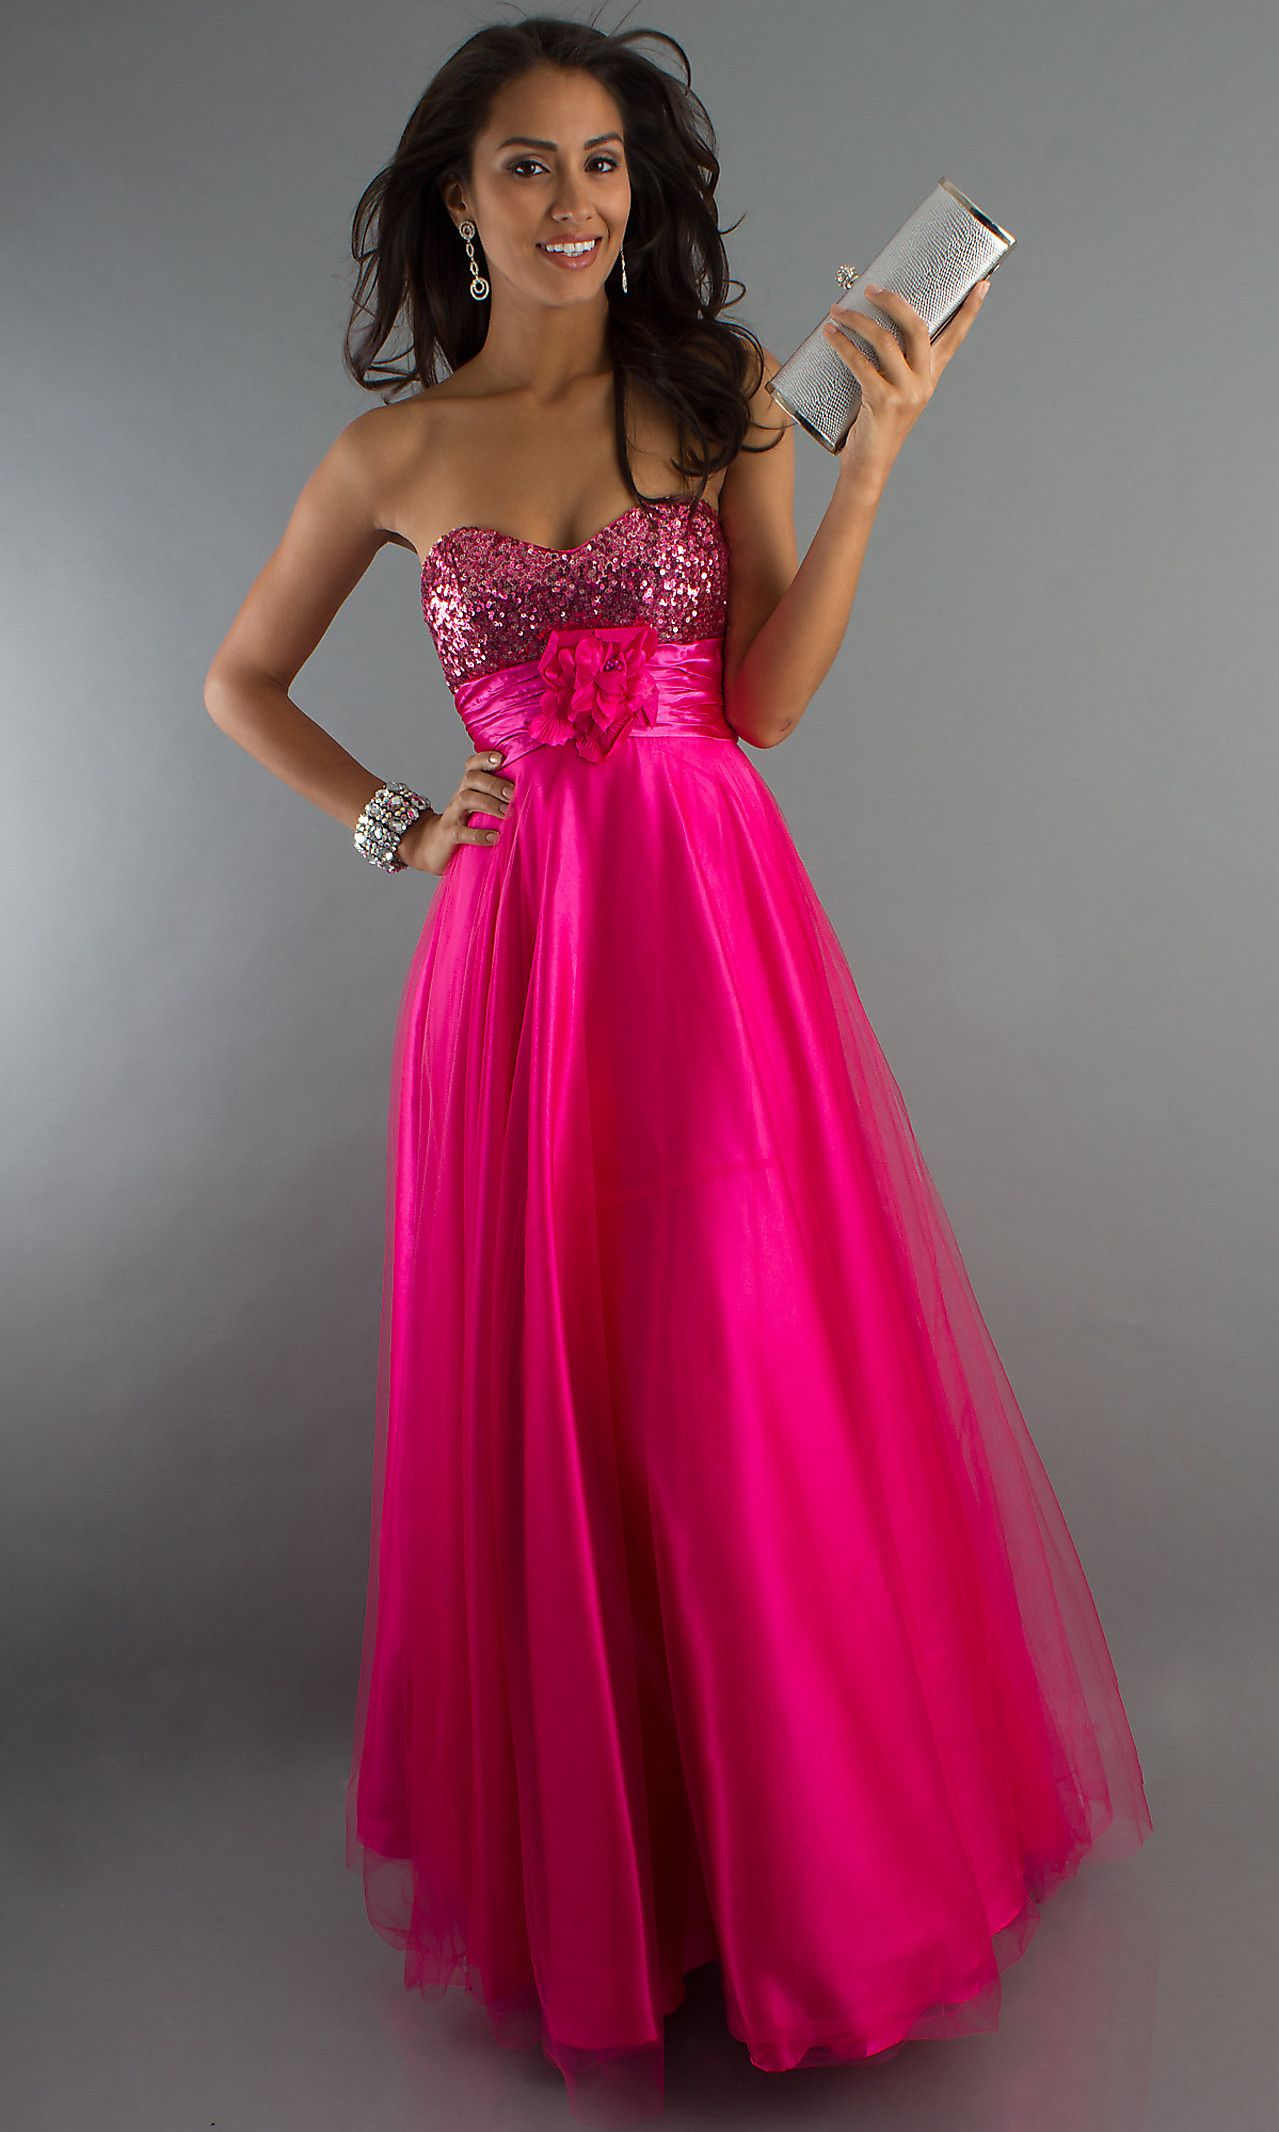 cf5f5e672c00d Long Strapless Sweetheart Gown DQ-8116f | Prom